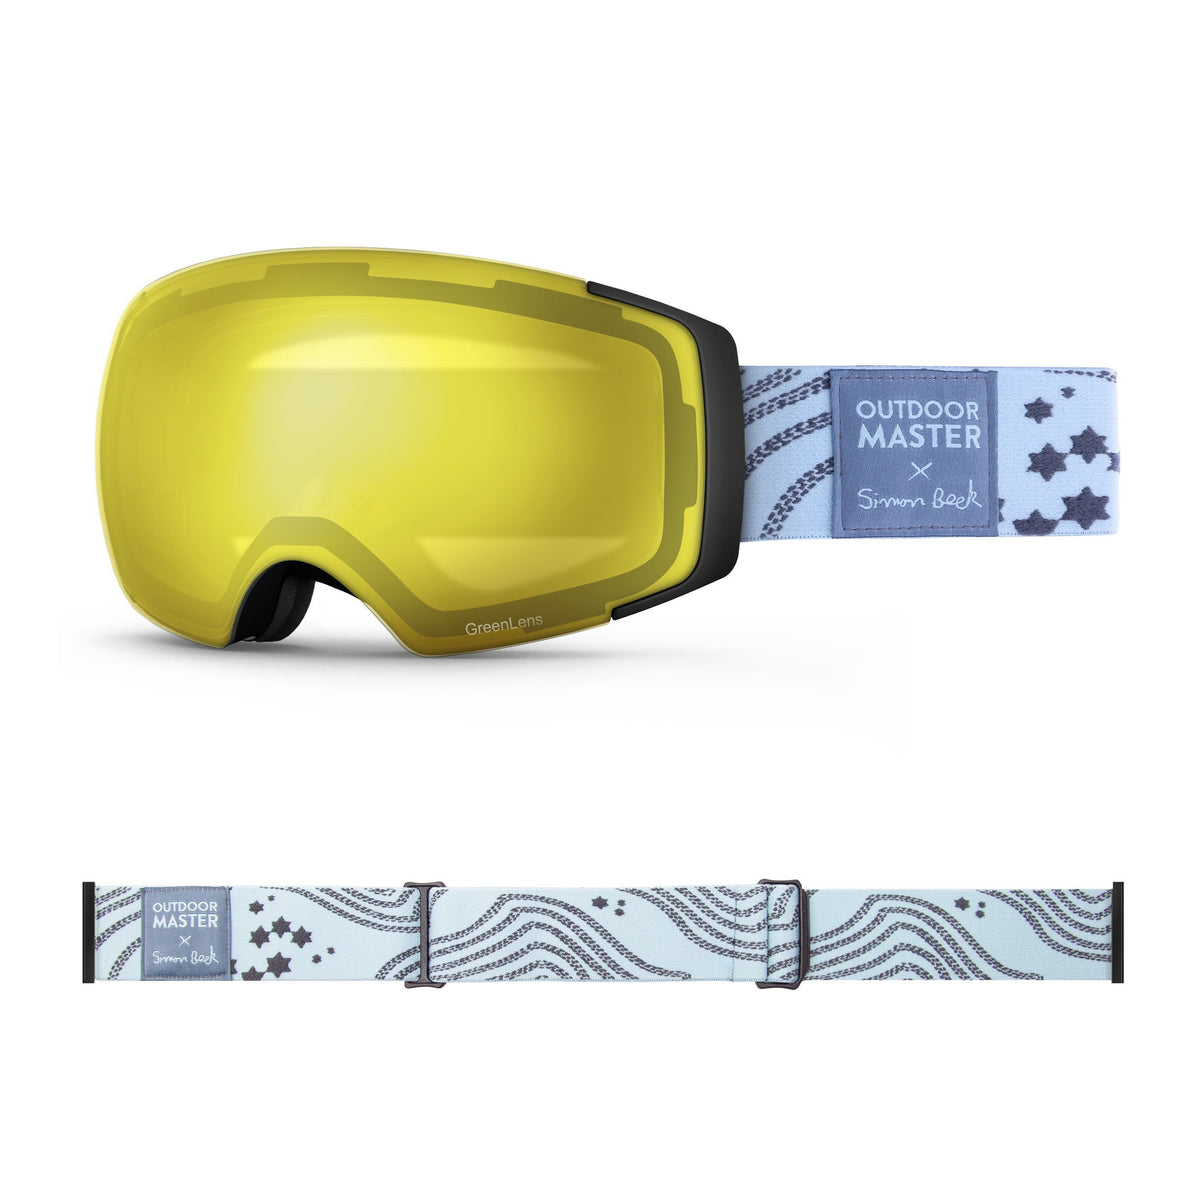 OutdoorMaster x Simon Beck Ski Goggles Pro Series - Snowshoeing Art Limited Edition OutdoorMaster GreenLens VLT 75% TAC Yellow Lens Polarized Star Road-Lightsteelblue